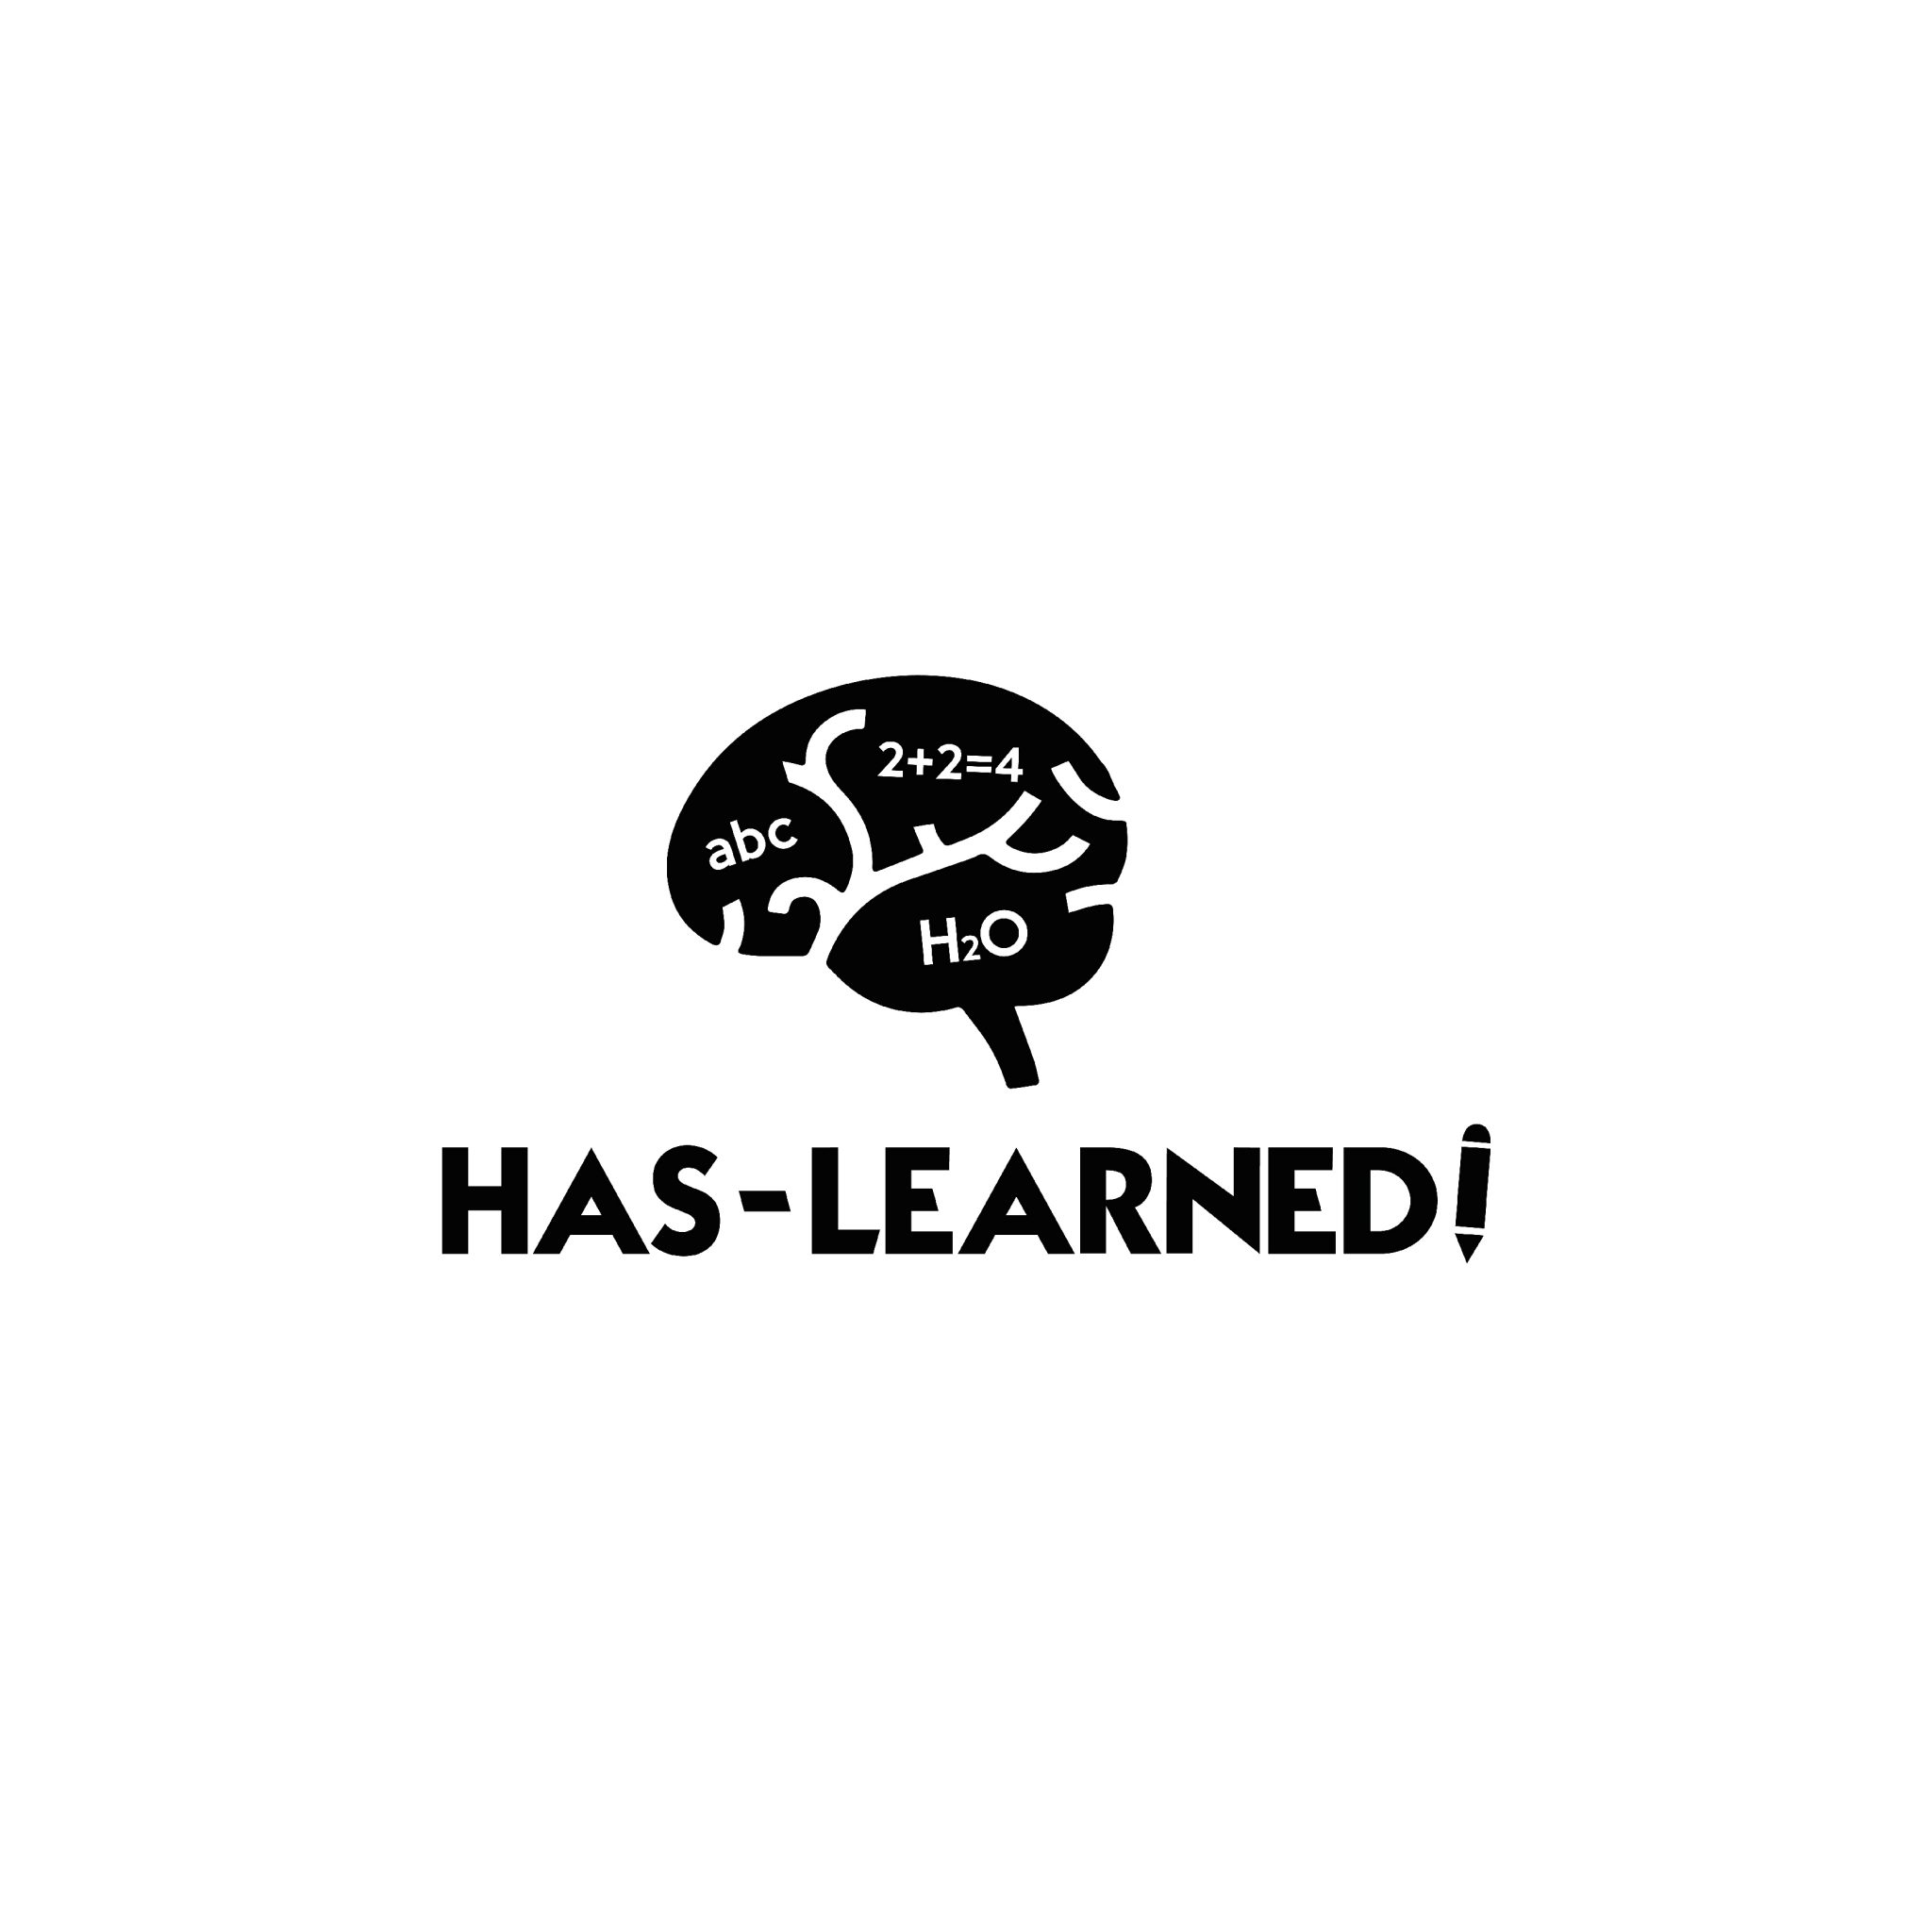 Has-Learned!